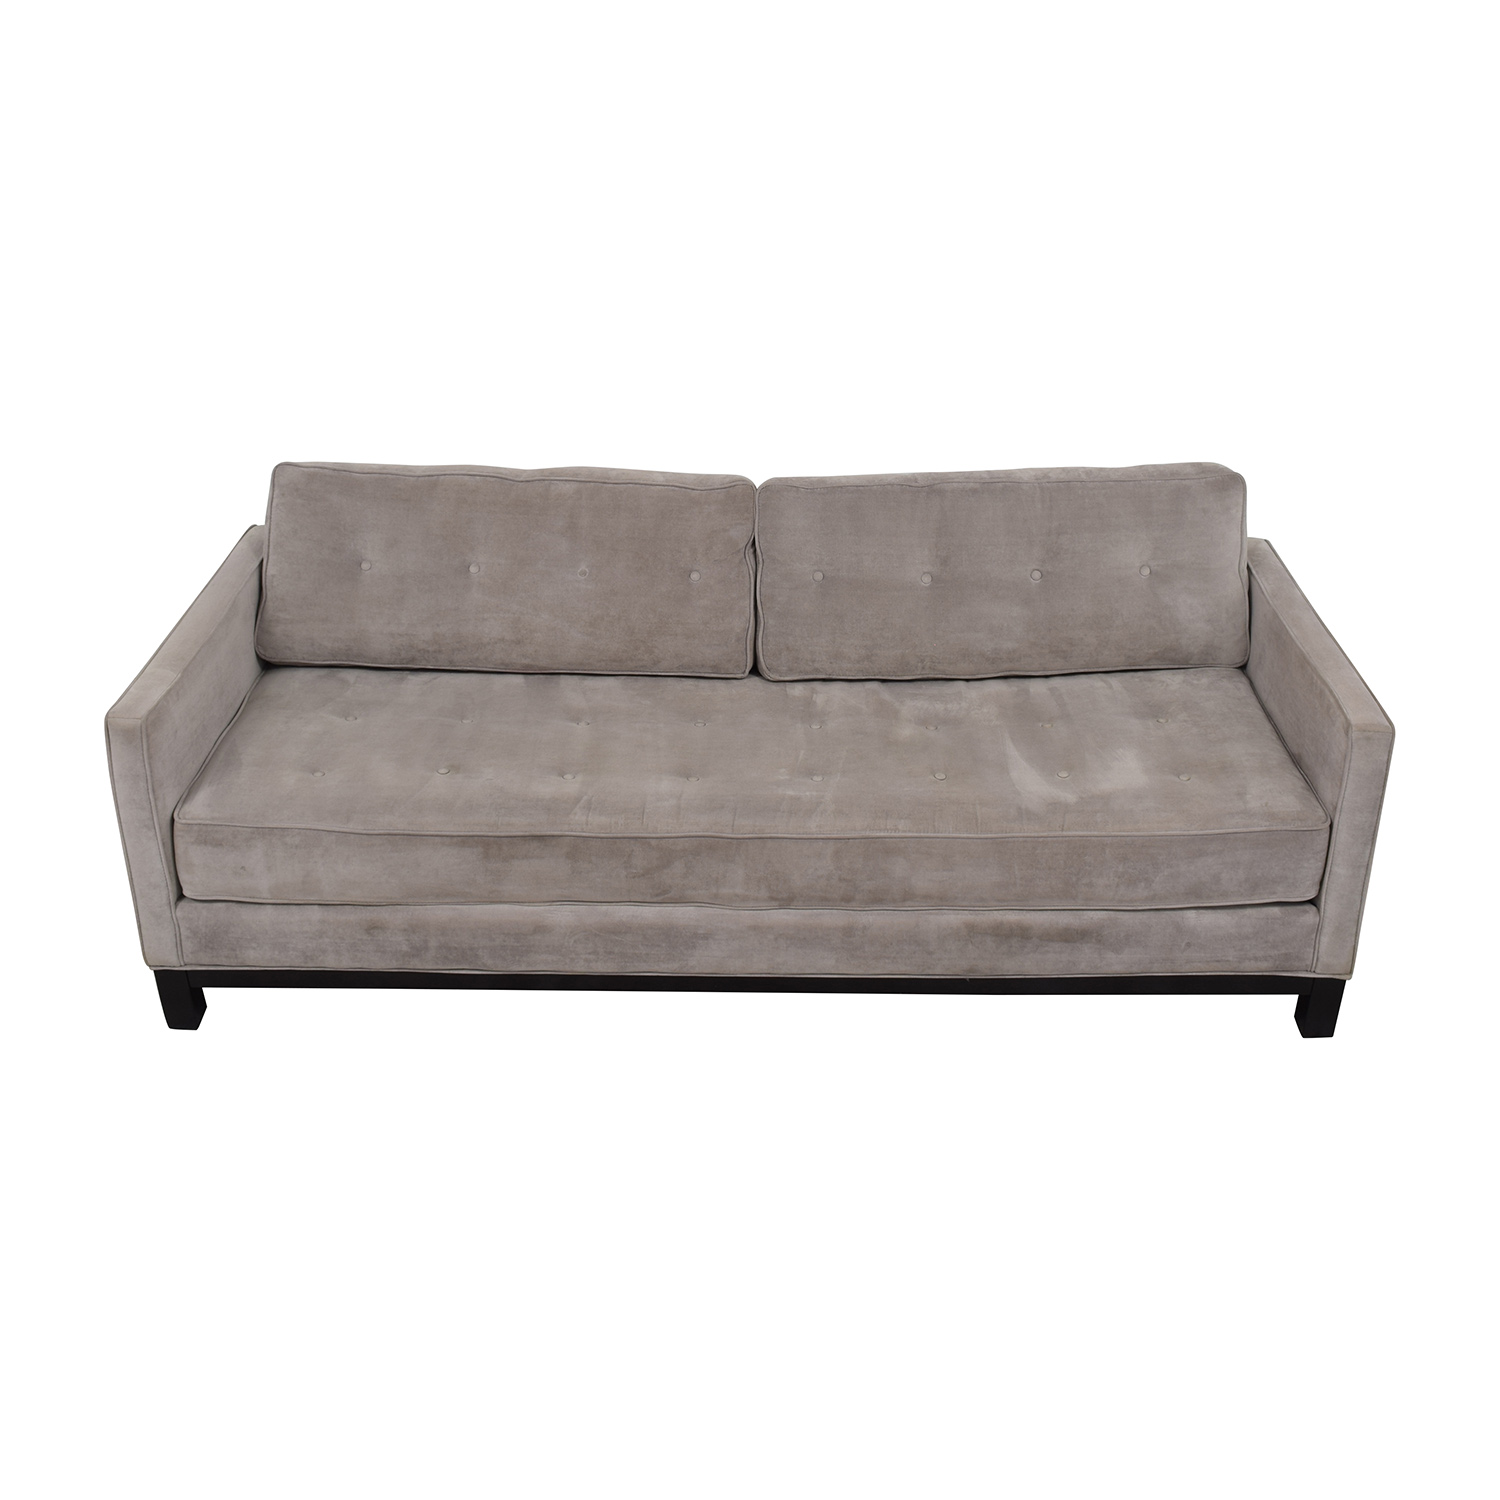 Zgallerie Sofa Jackson Sofa Made In The Usa Furniture